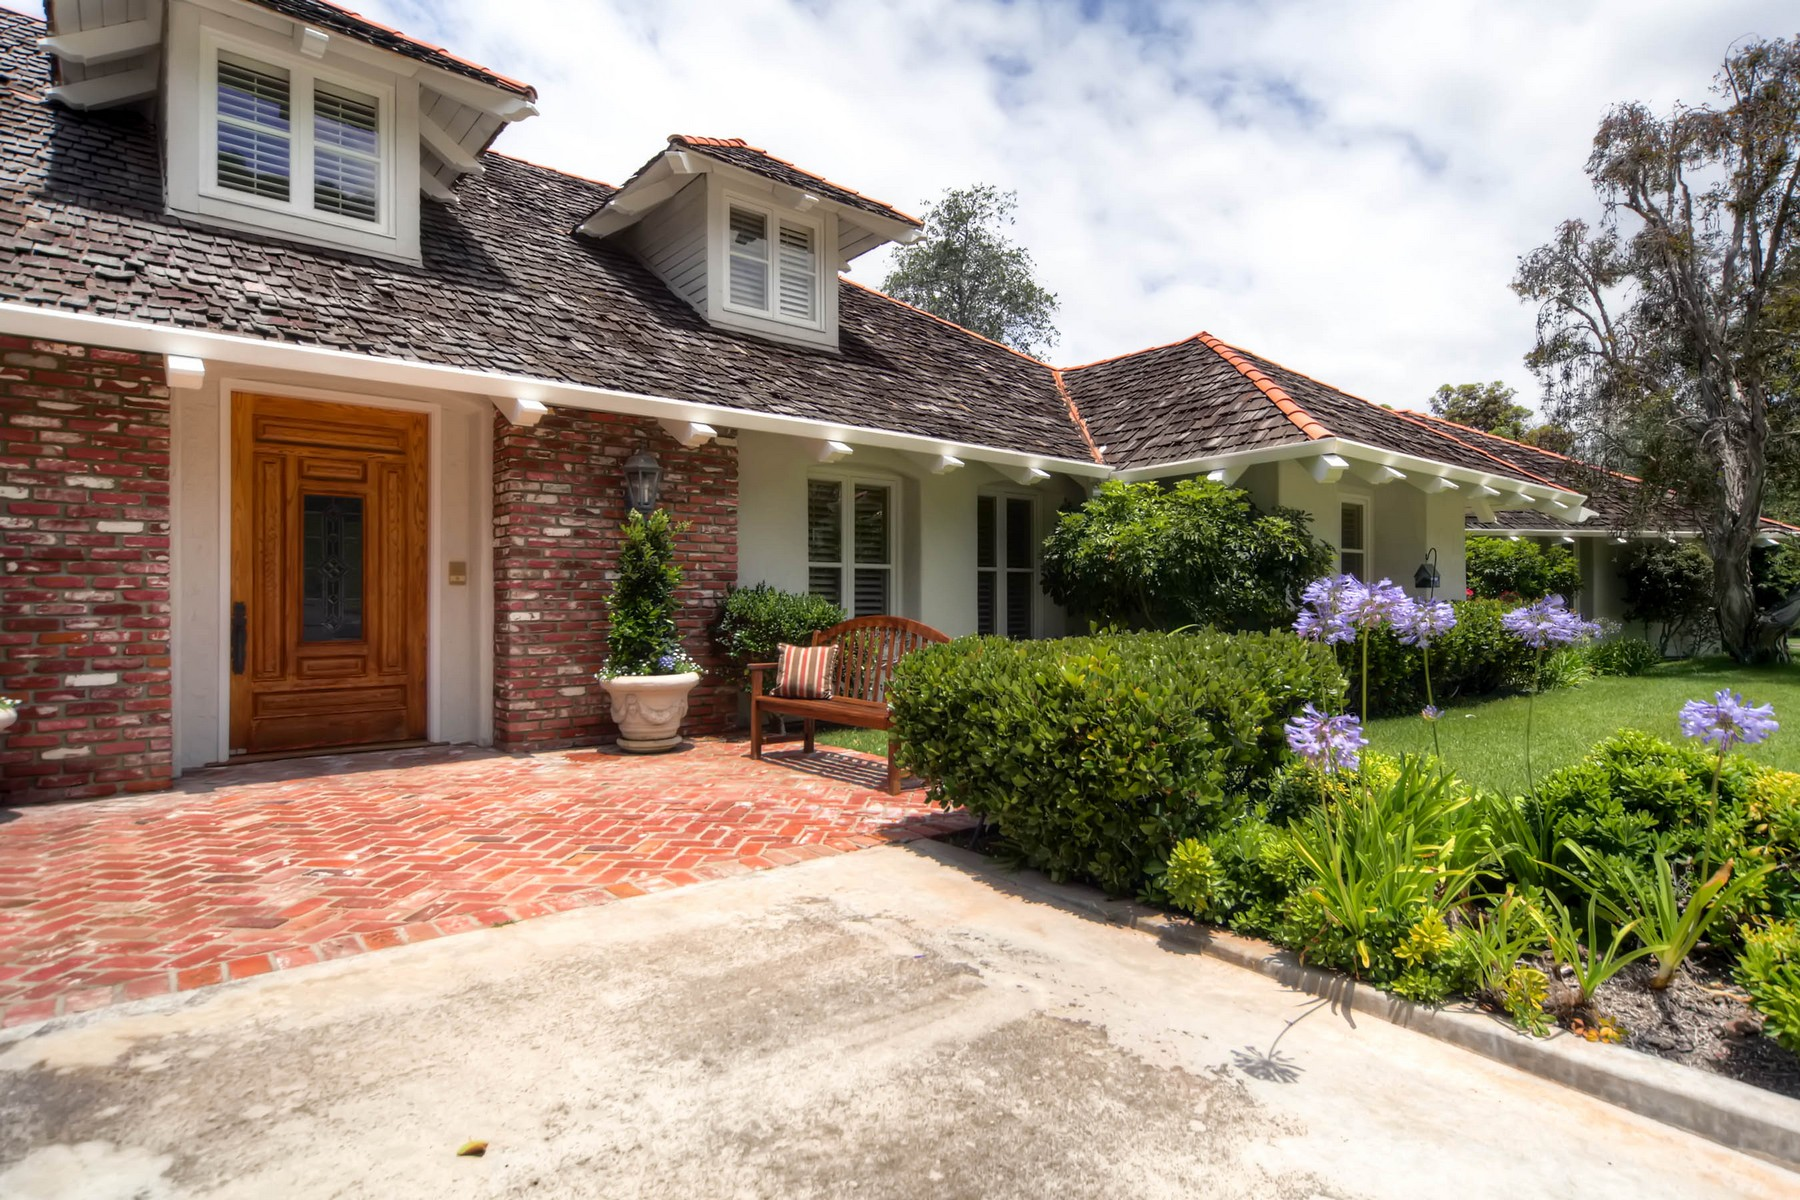 Additional photo for property listing at 5720 Lago Lindo  Rancho Santa Fe, California 92067 Estados Unidos